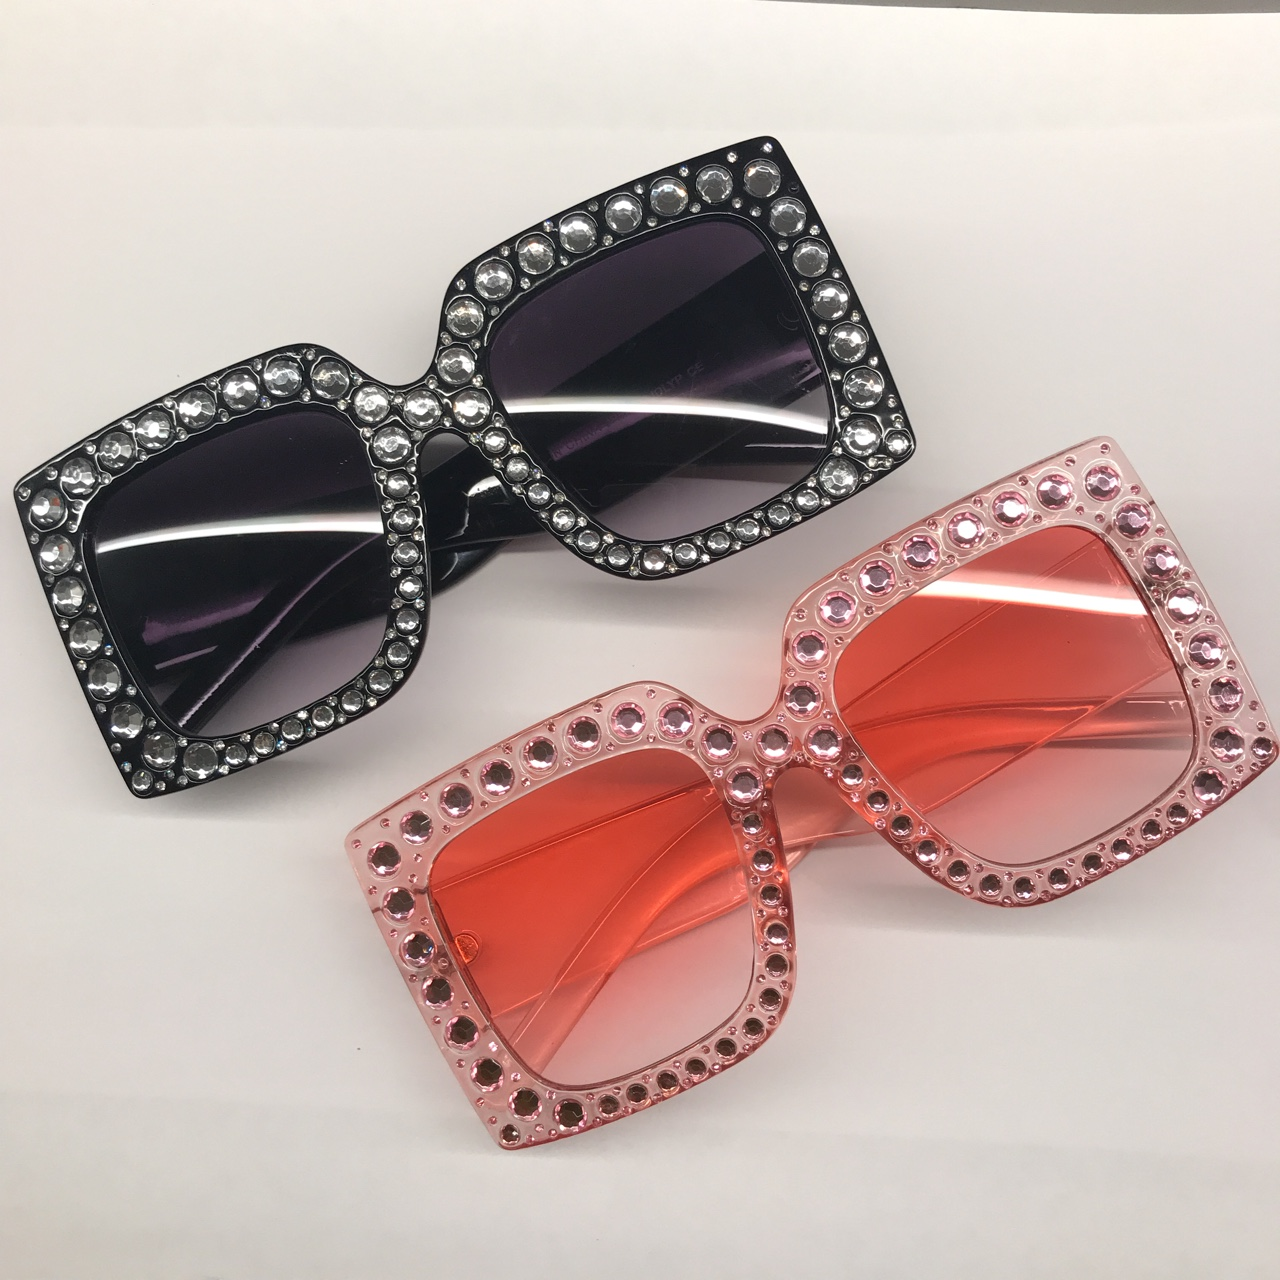 b598b32fa3b16 OVERSIZED SQUARE RHINESTONE BLING WOMEN SUNGLASSES 🔸 🔸 - Depop